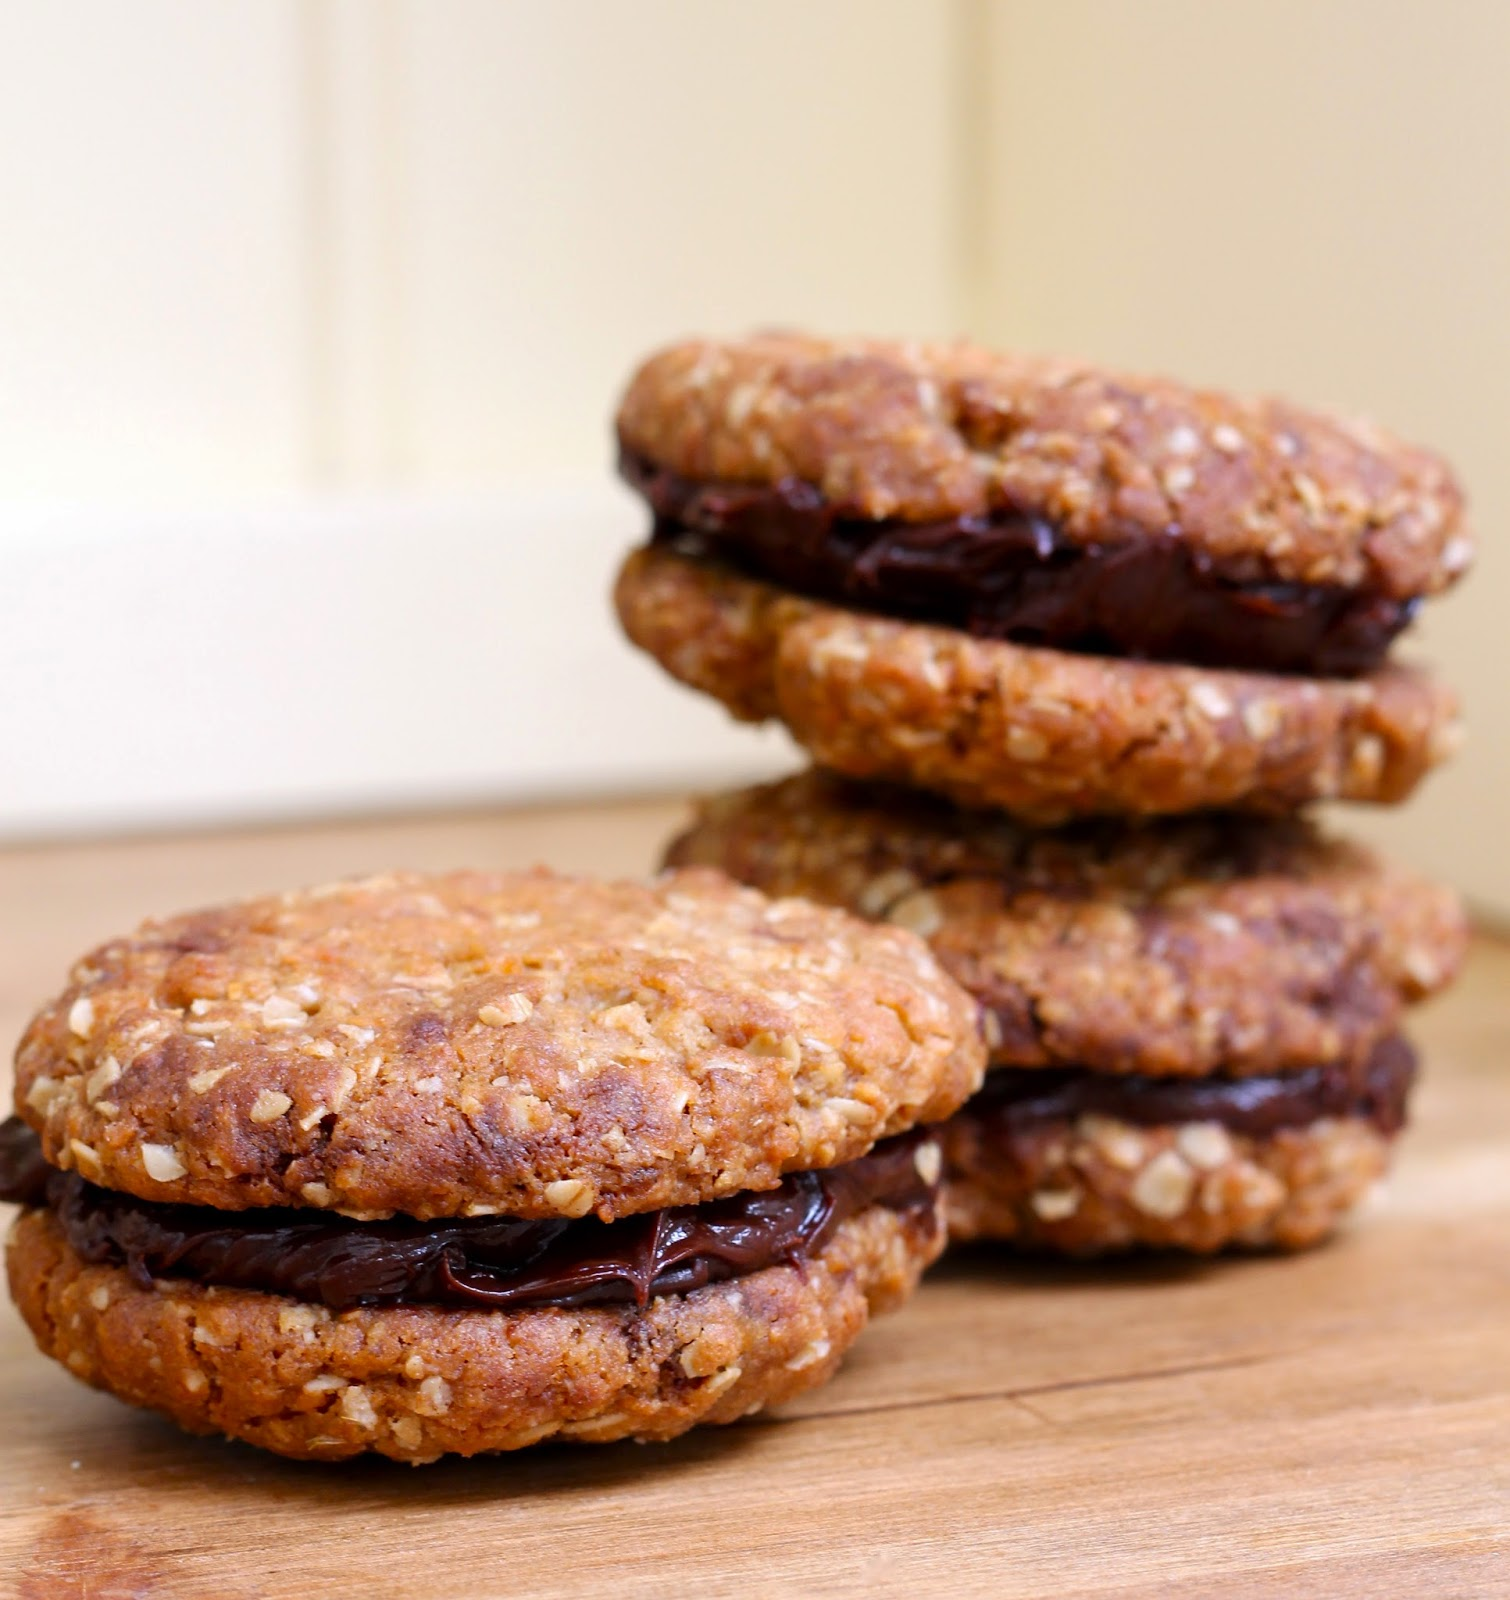 Sandwiched homemade chocolate hobnobs